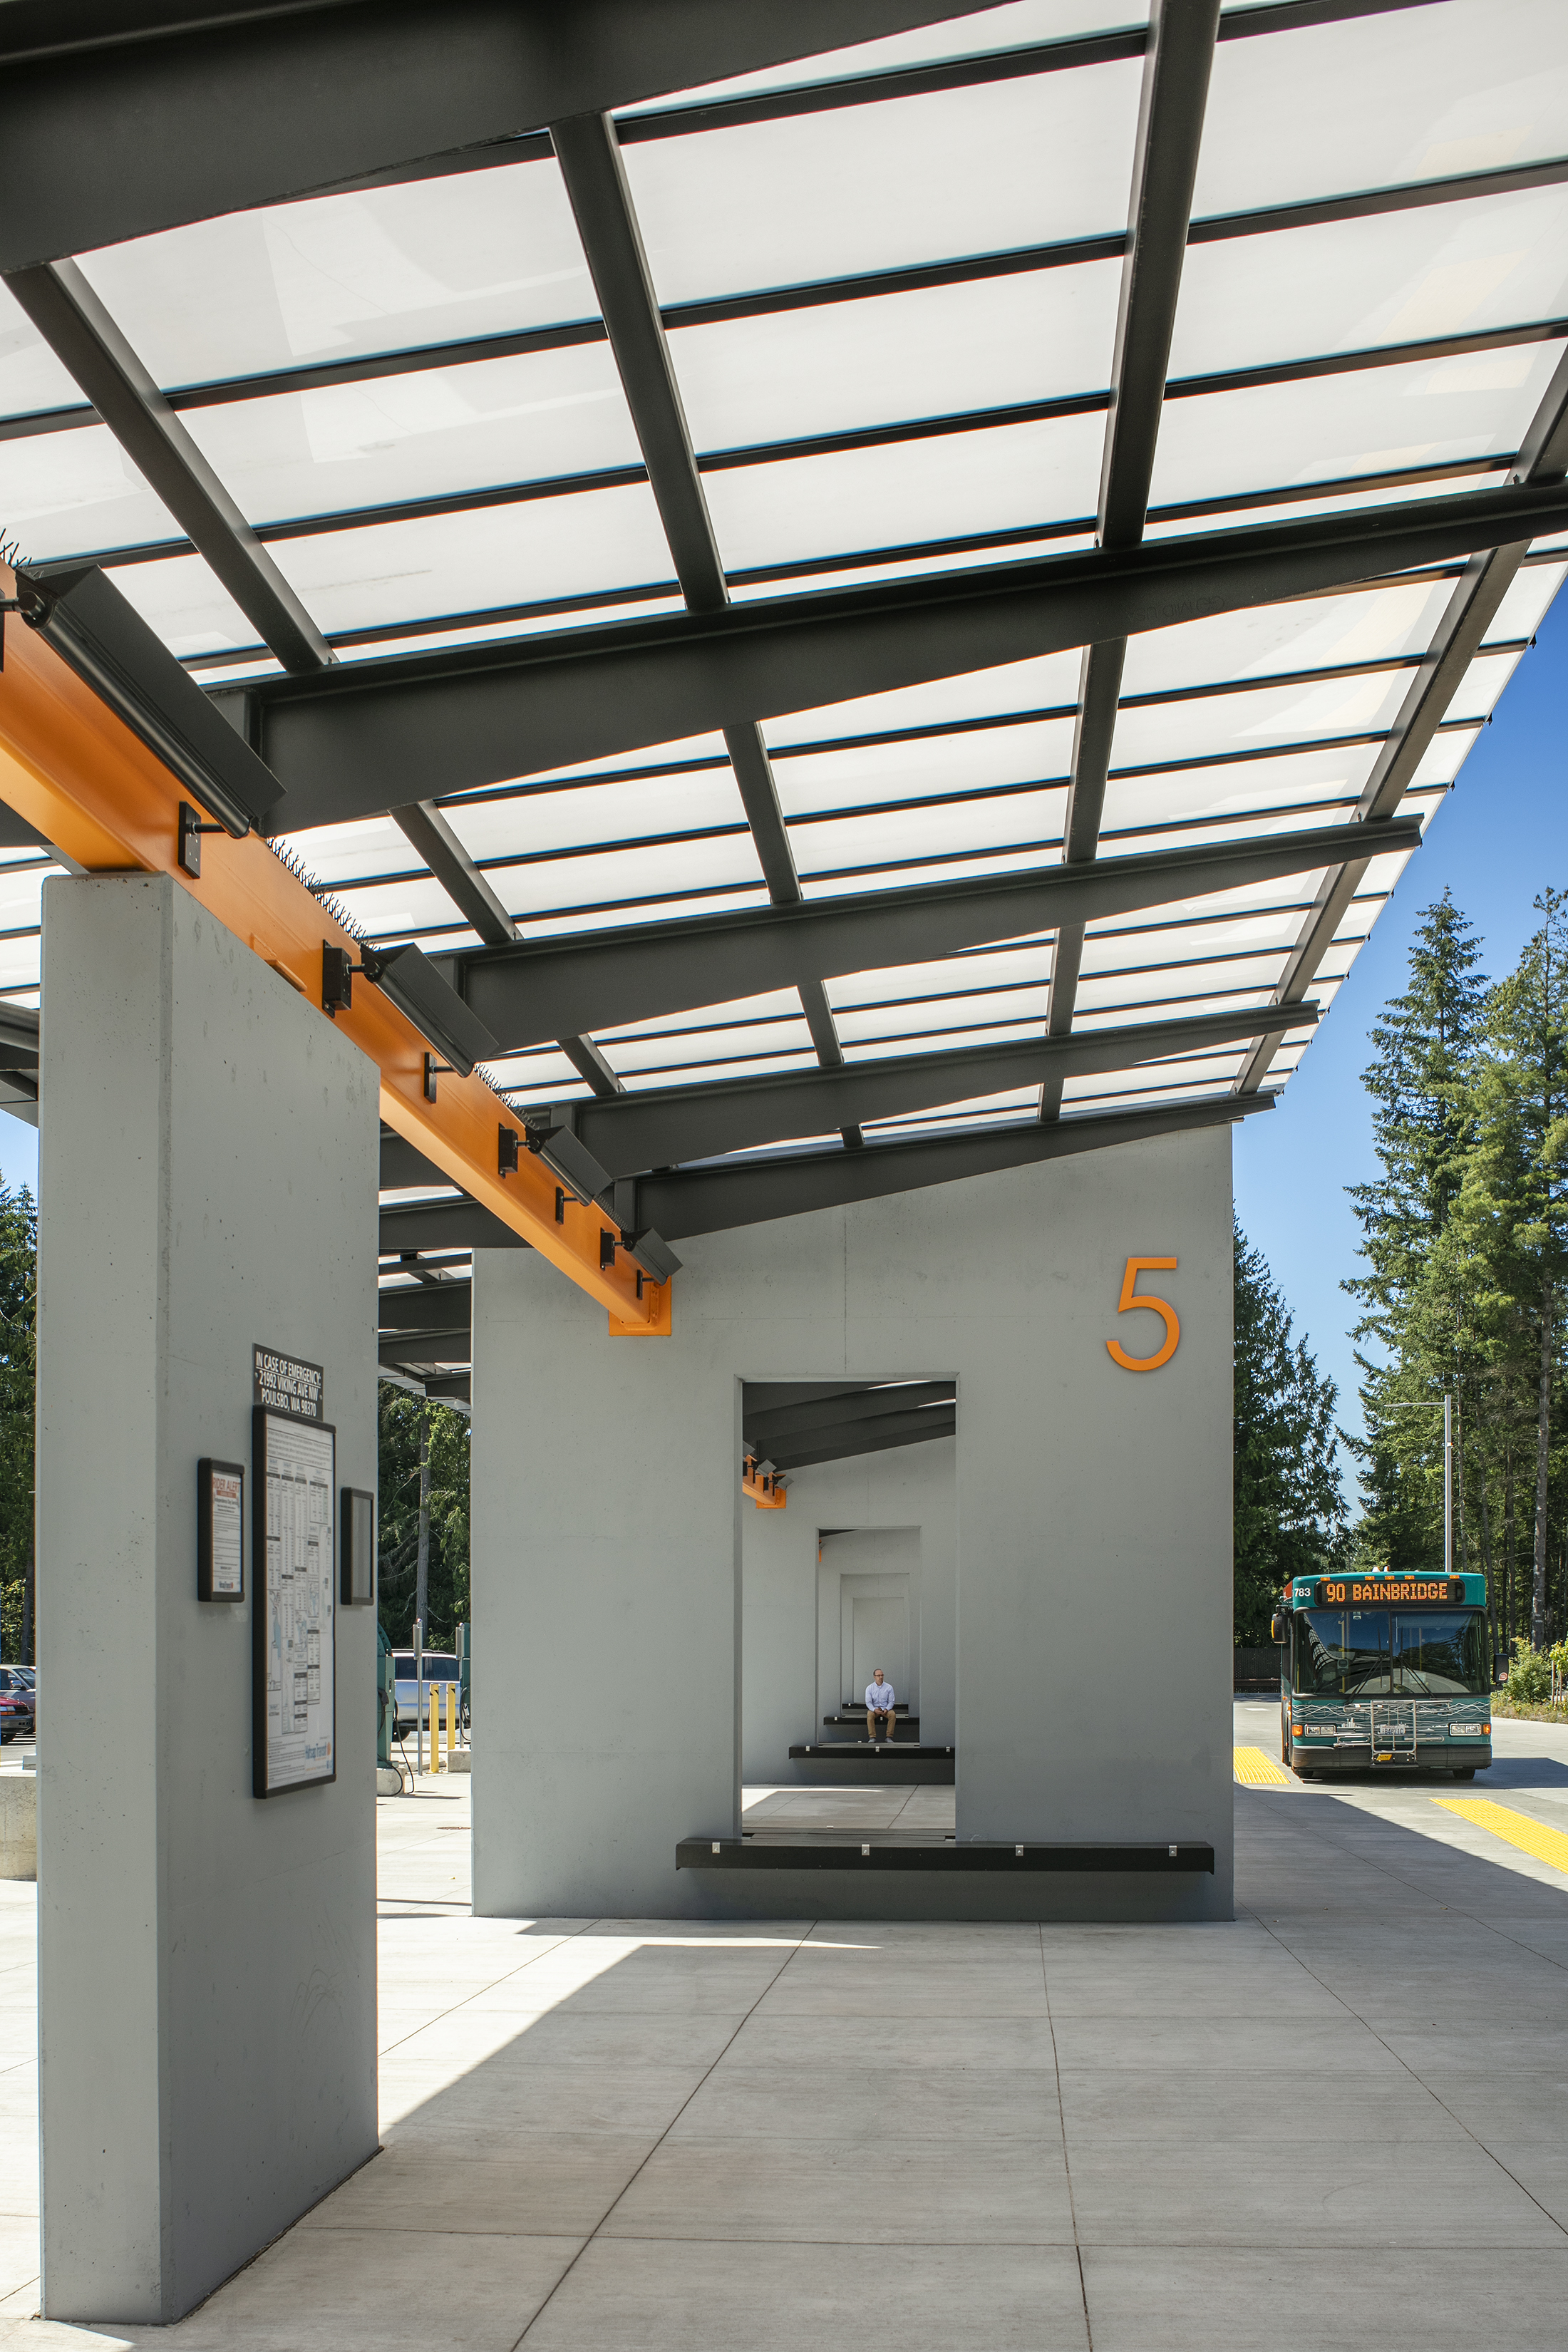 Kitsap Transit North Base and Park and Ride 5